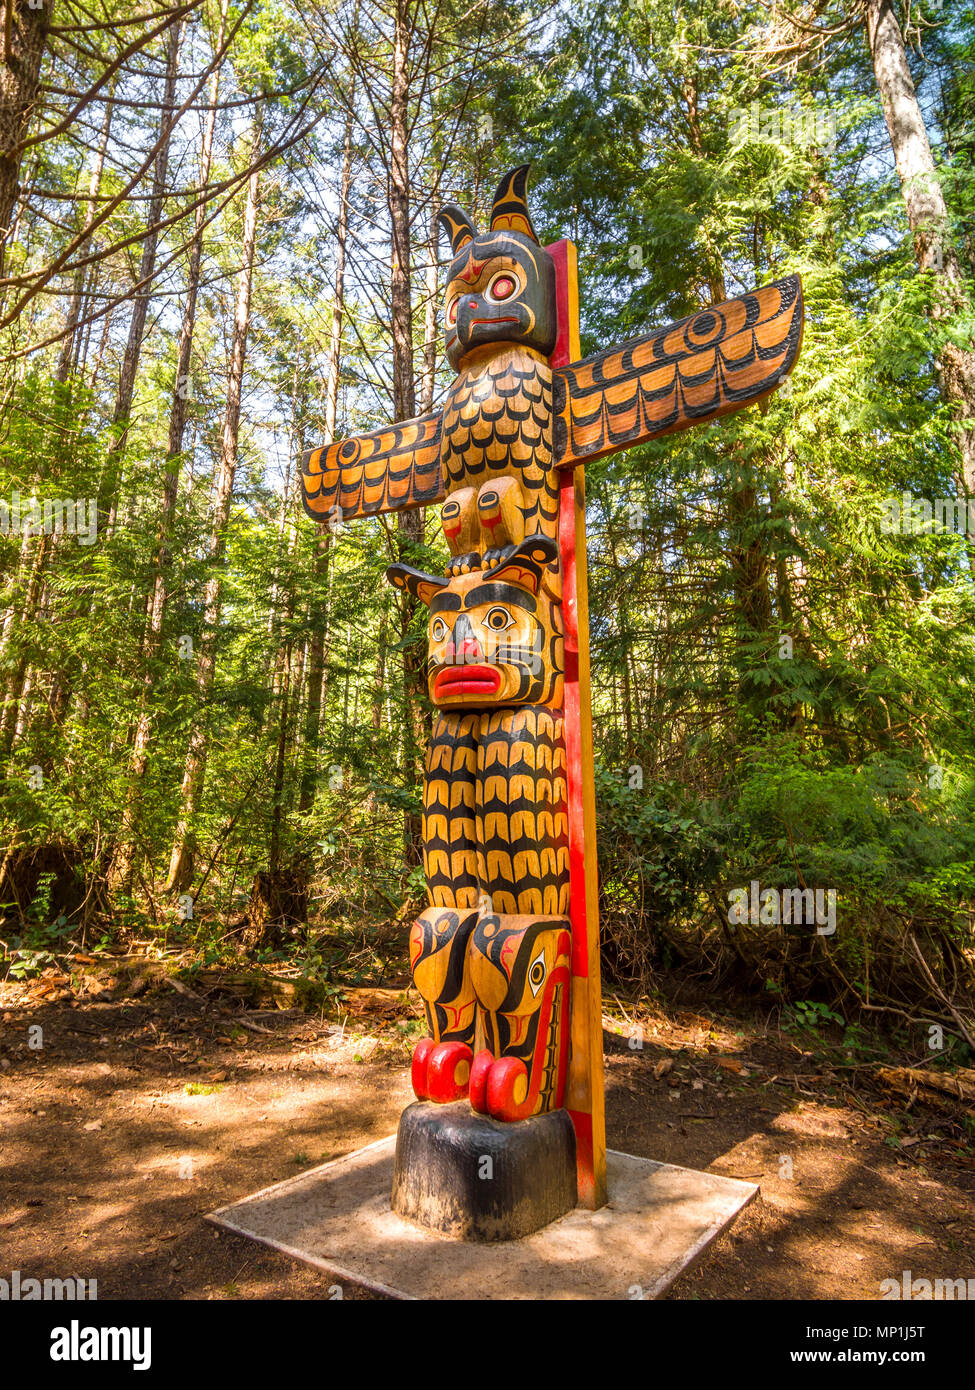 Native Canadian totem, Helliwell Provincial Park, Hornby Island, BC, Canada. - Stock Image